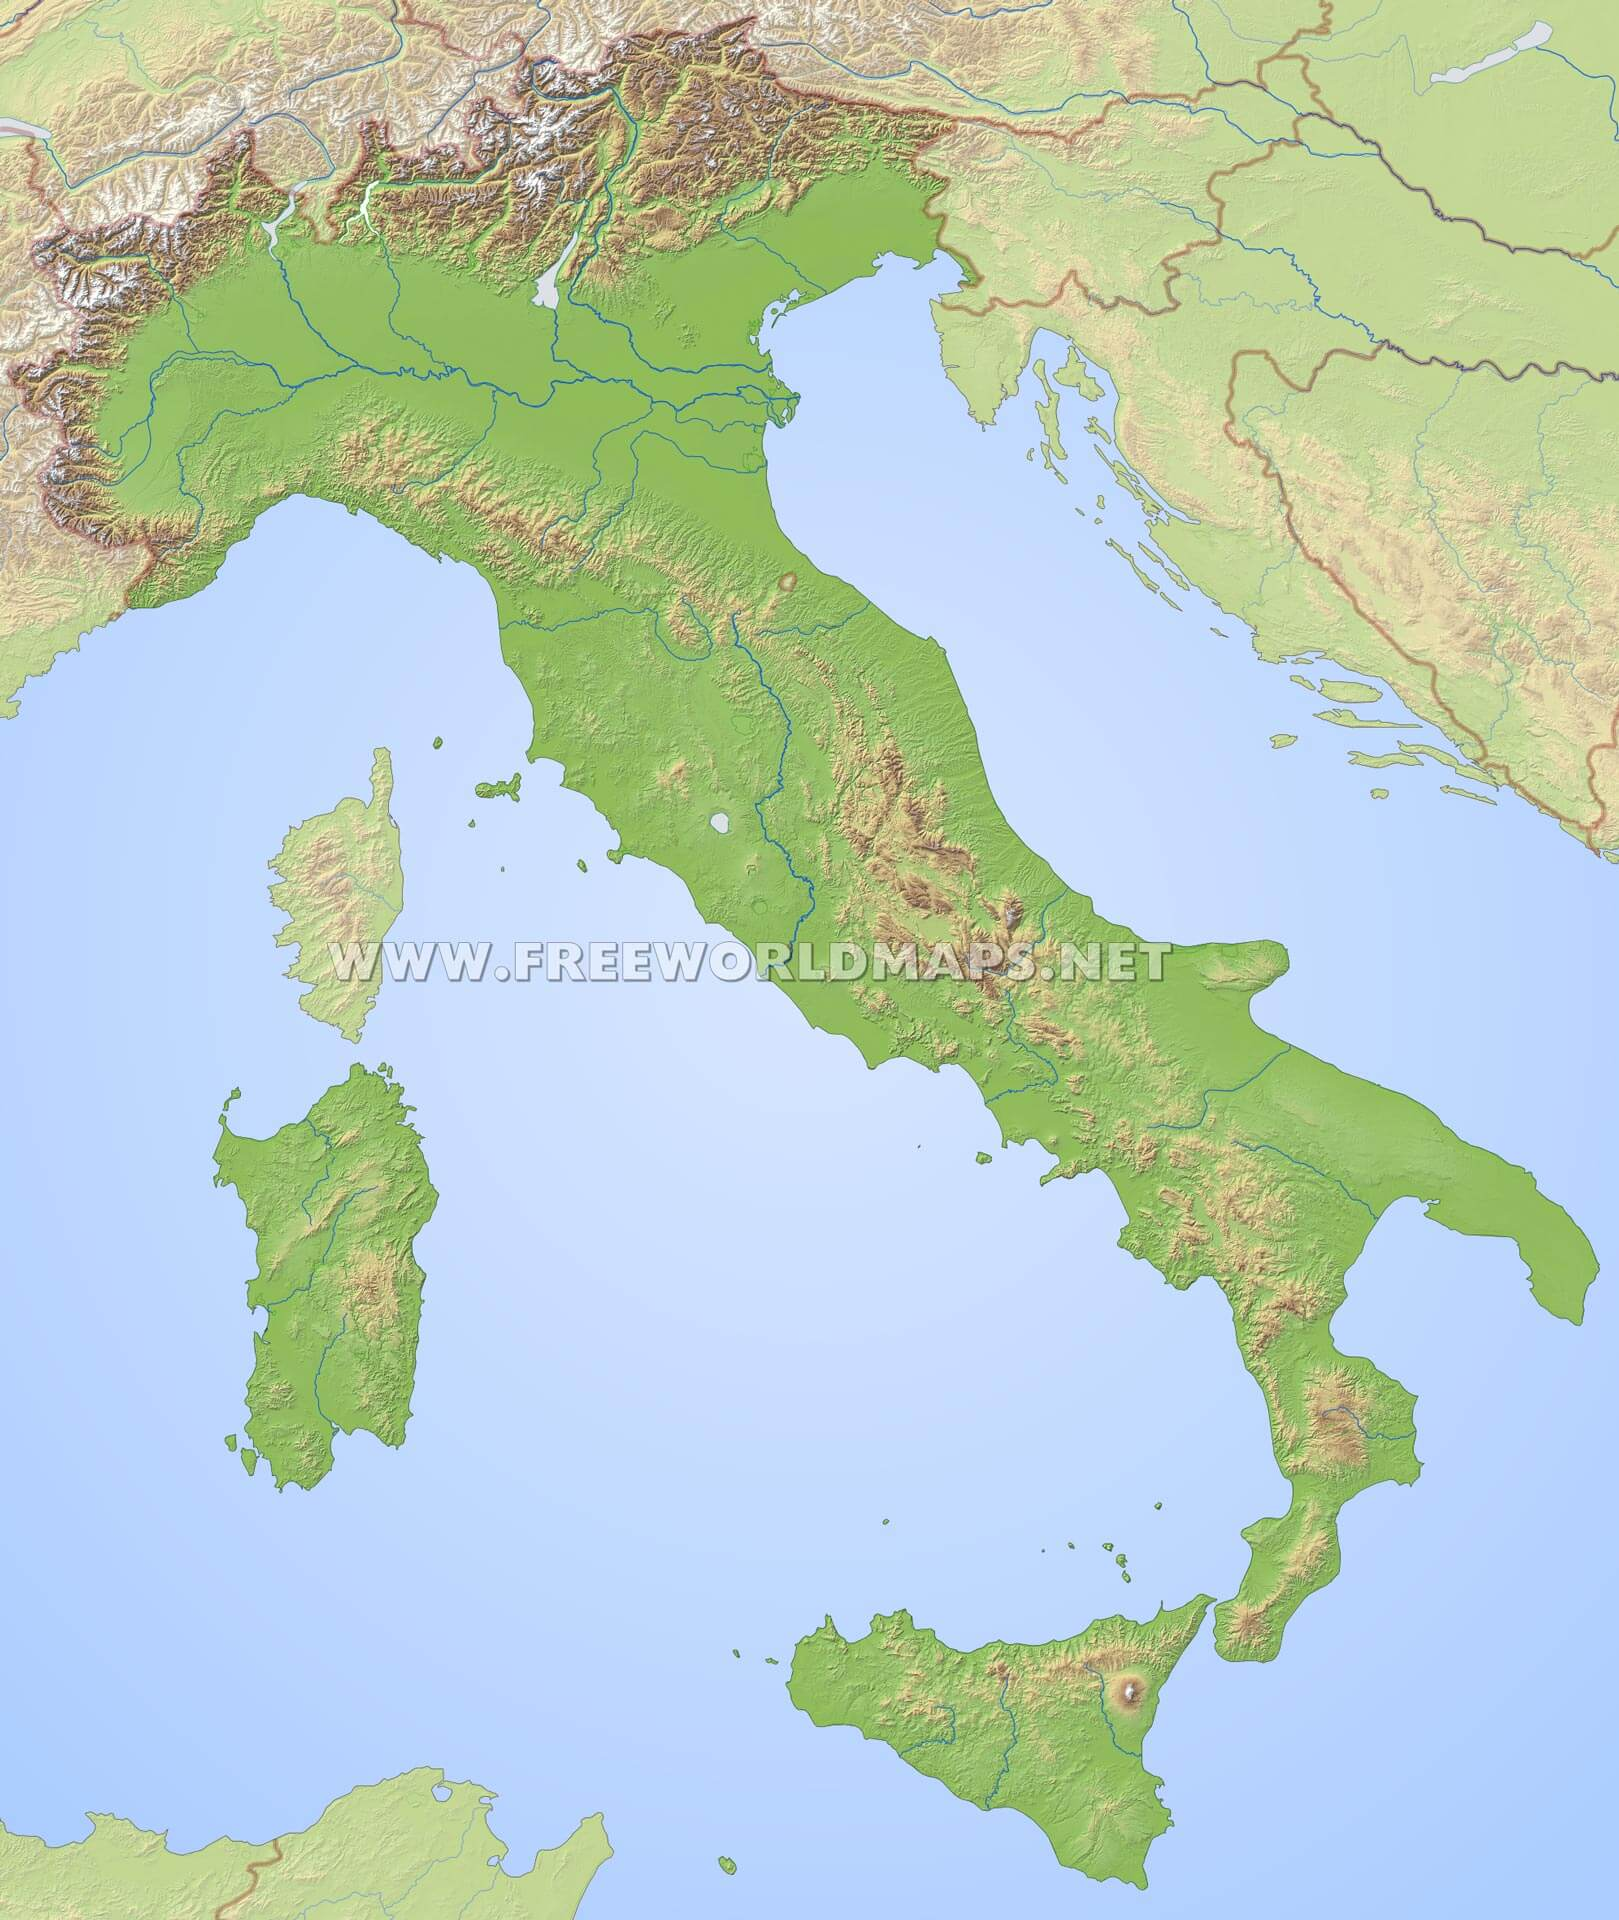 Italy physical map italy geography map showing the major geographical features of italy italy hd map gumiabroncs Images